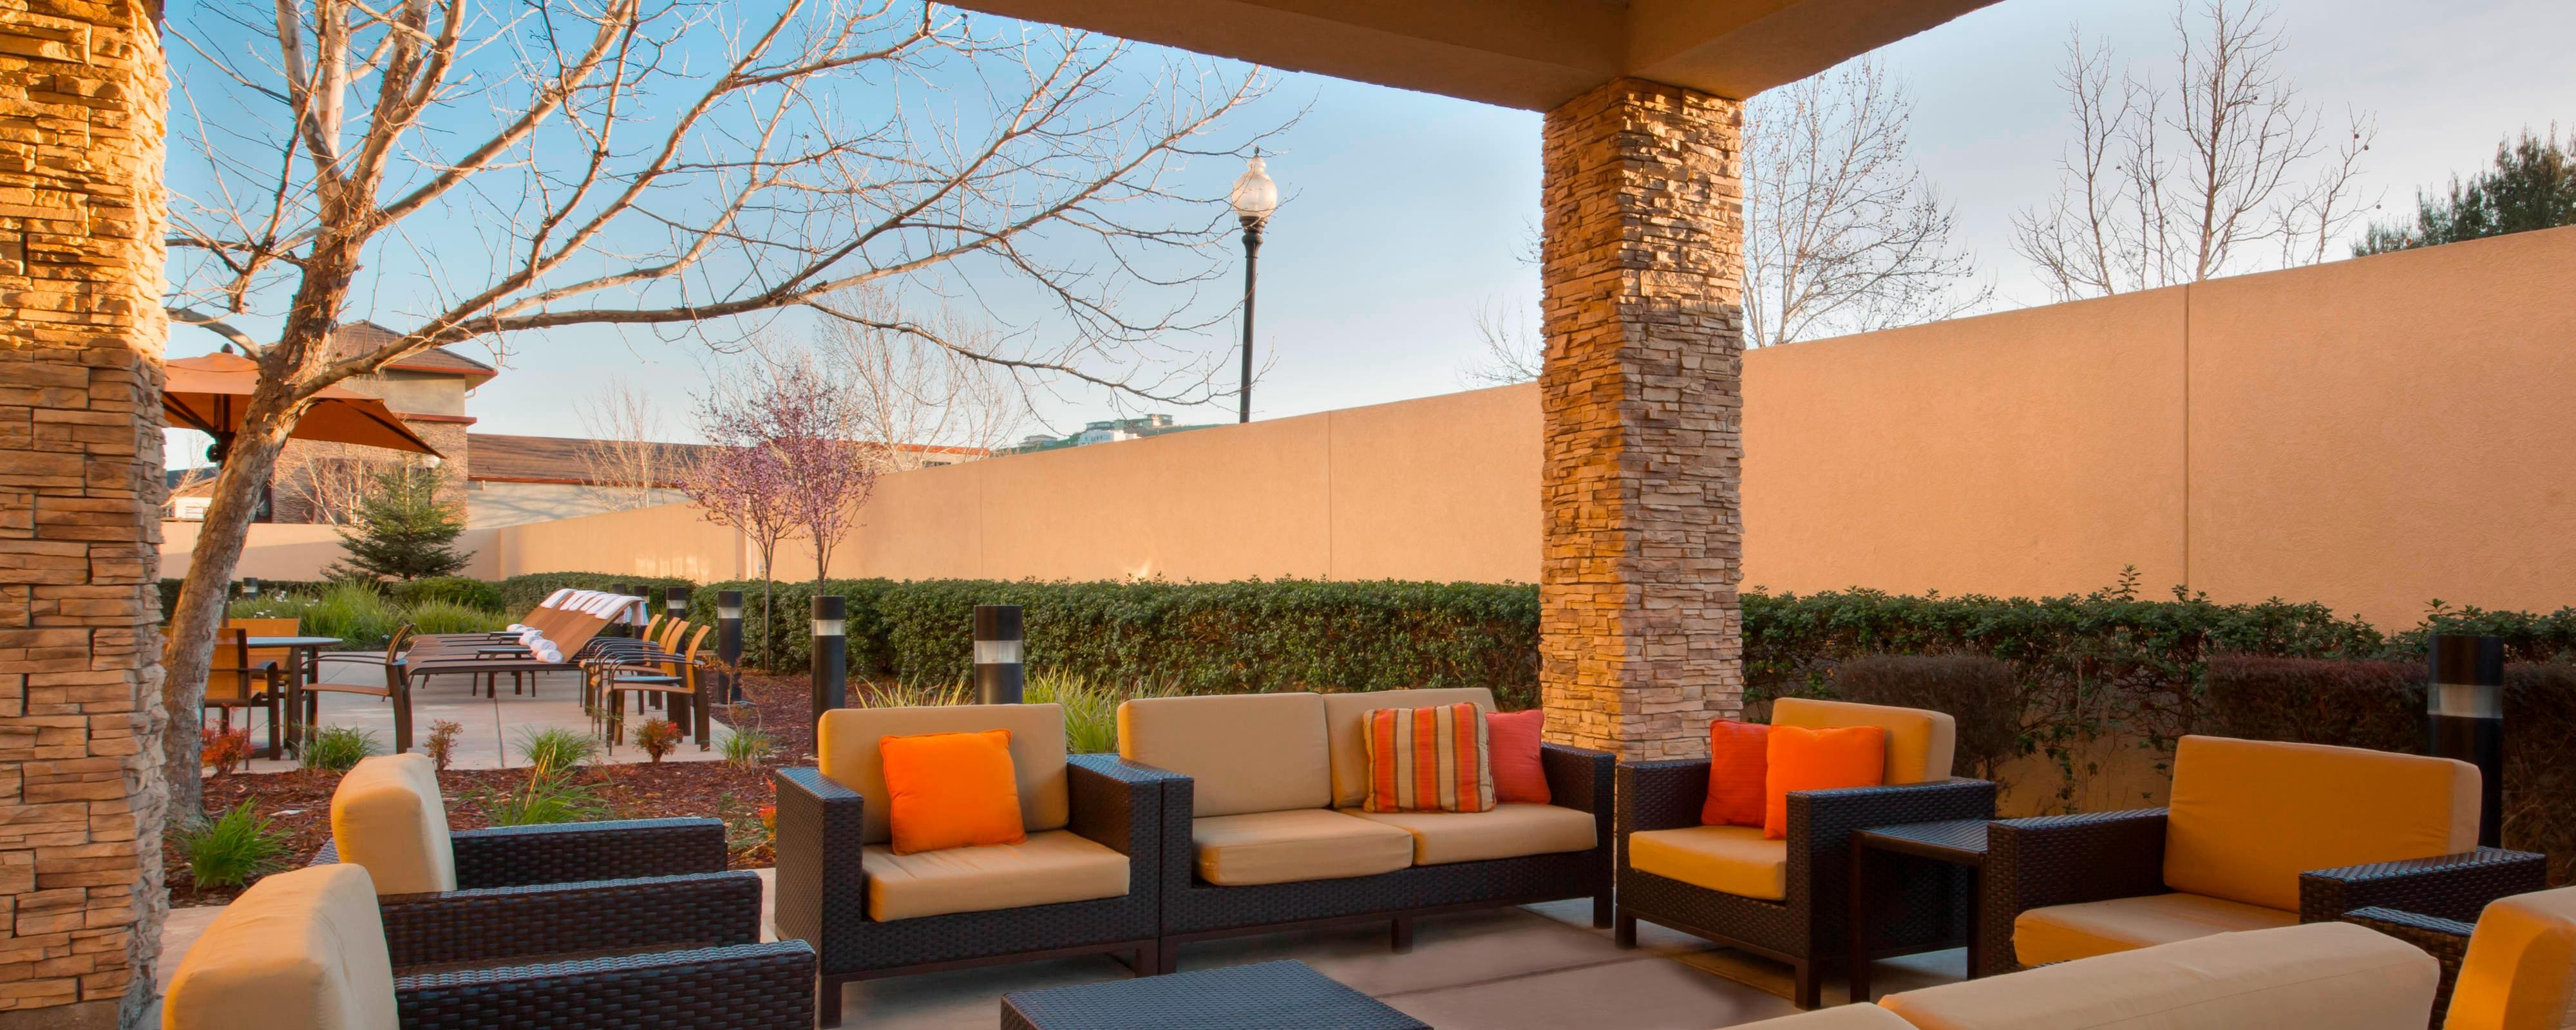 Folsom California Hotel Outdoor Courtyard